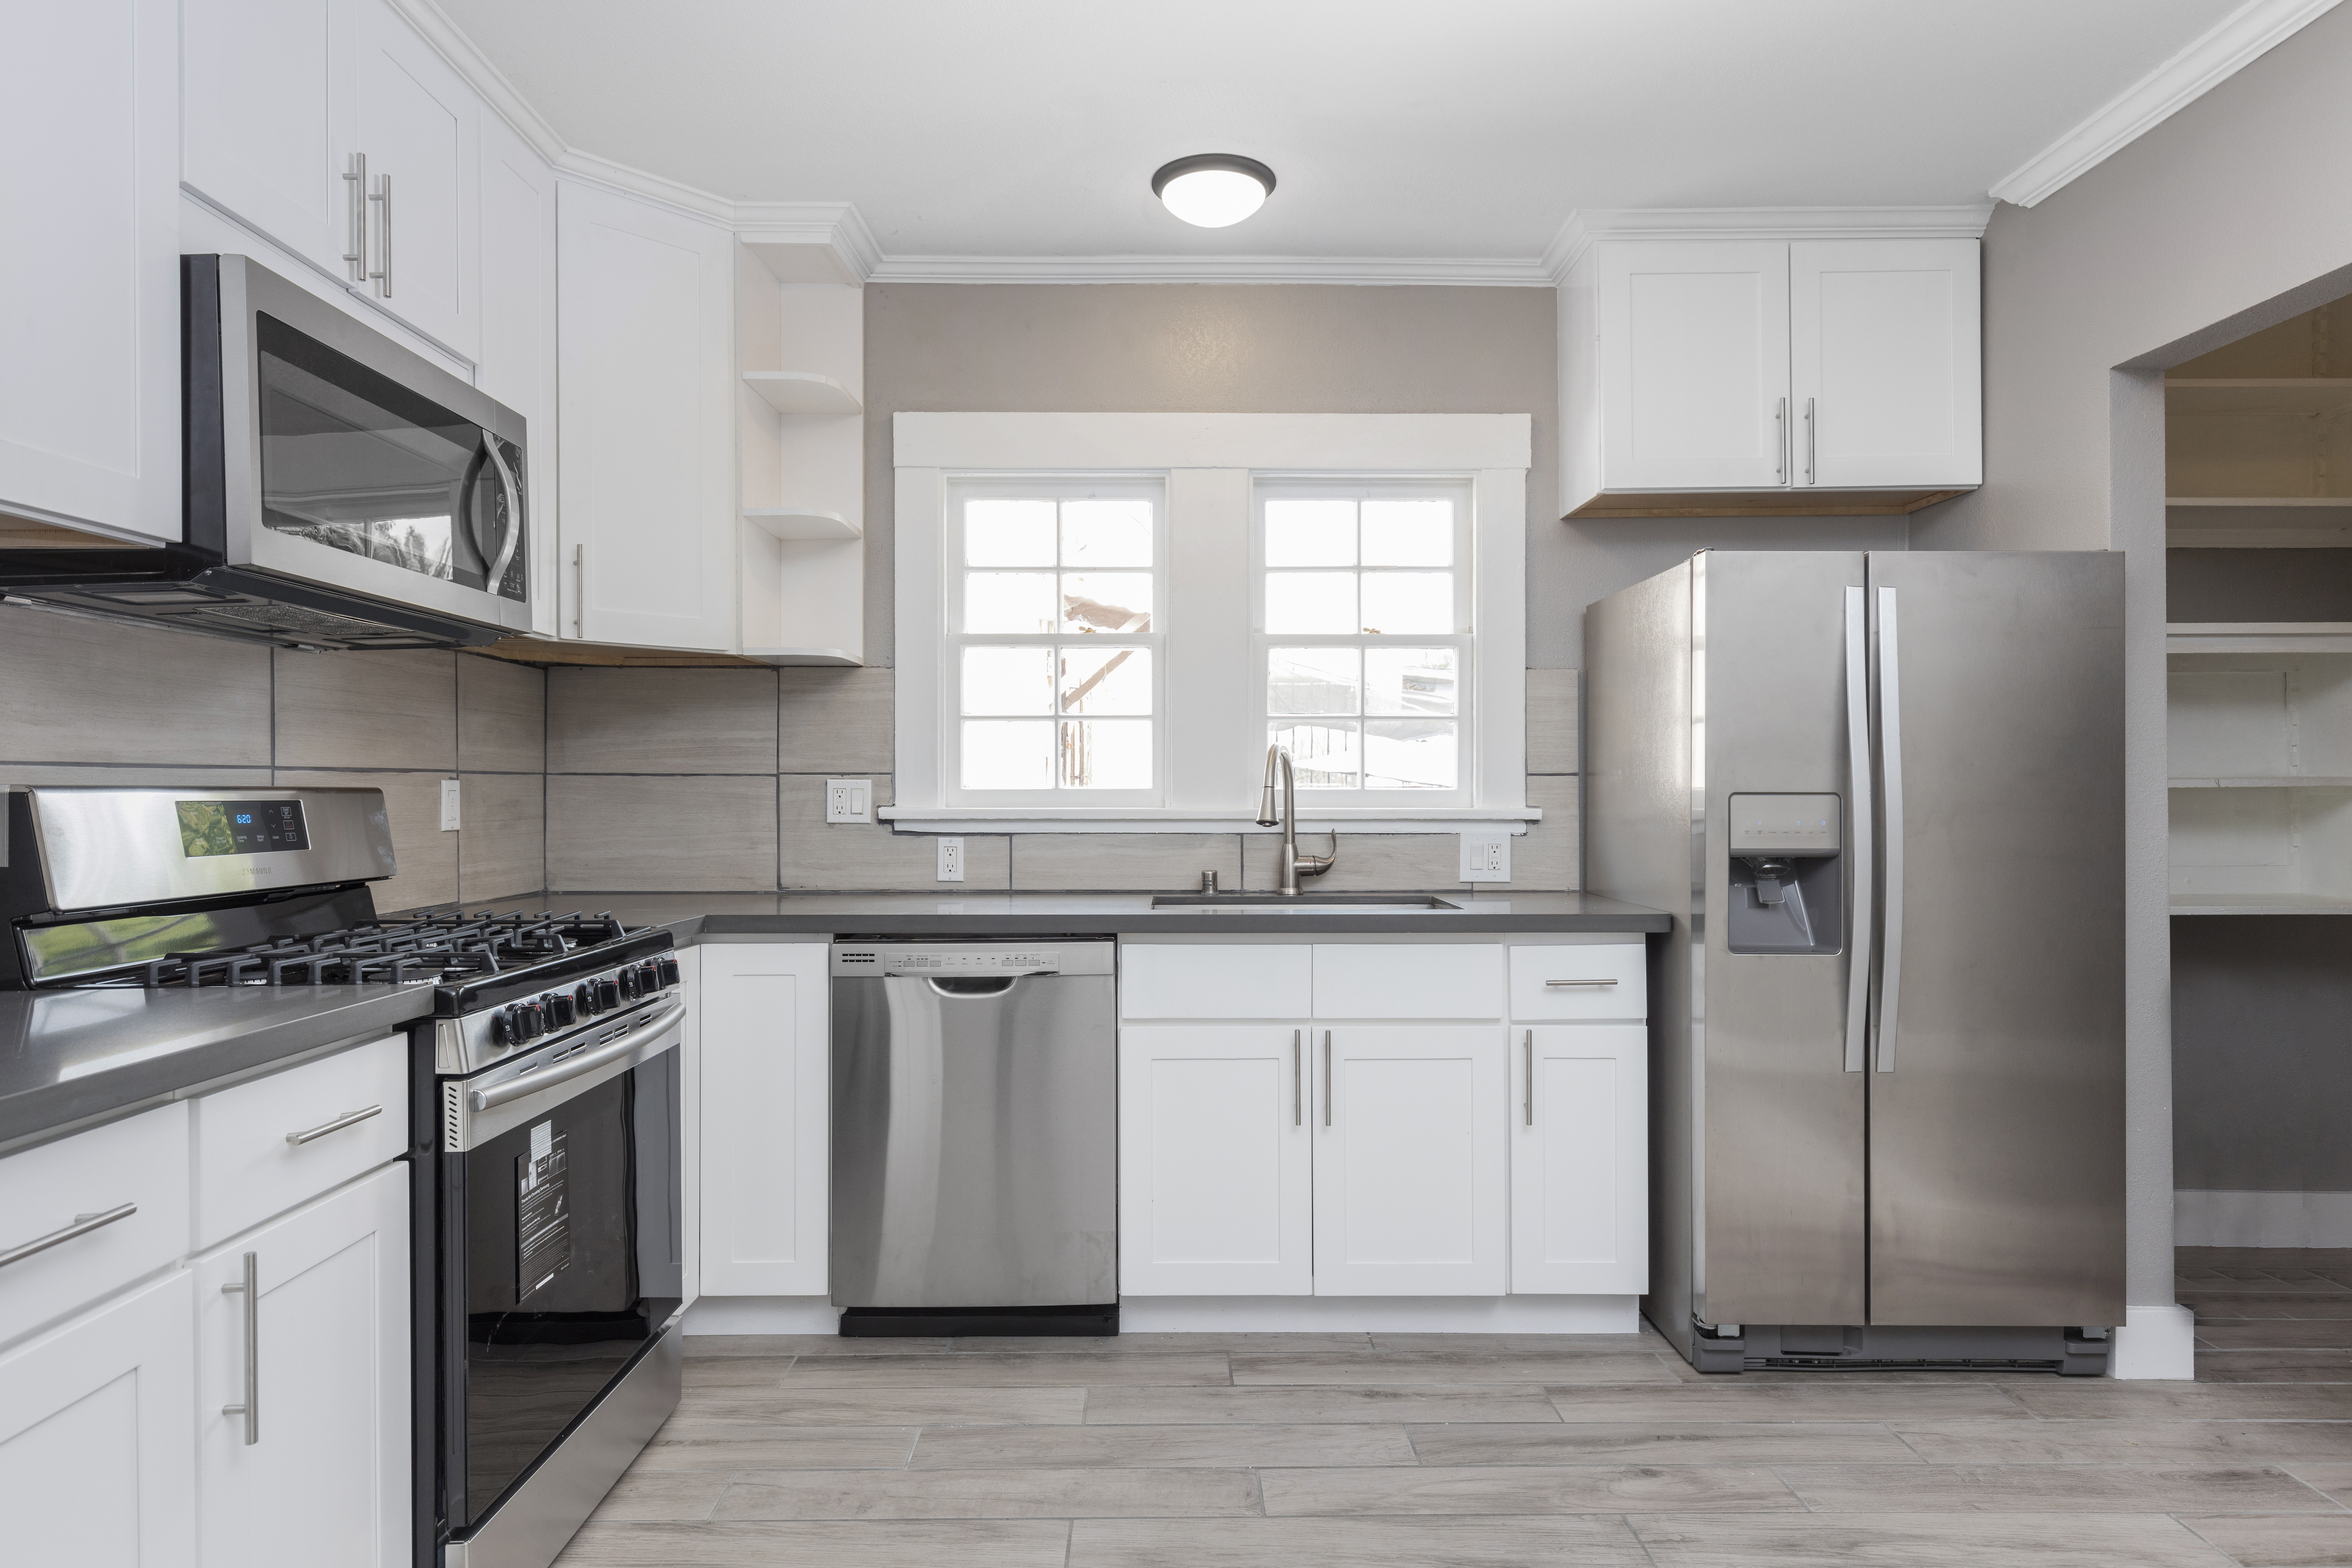 The Best Way to Clean Stainless Steel Appliances   Pittsburgh   Terry's Plumbing